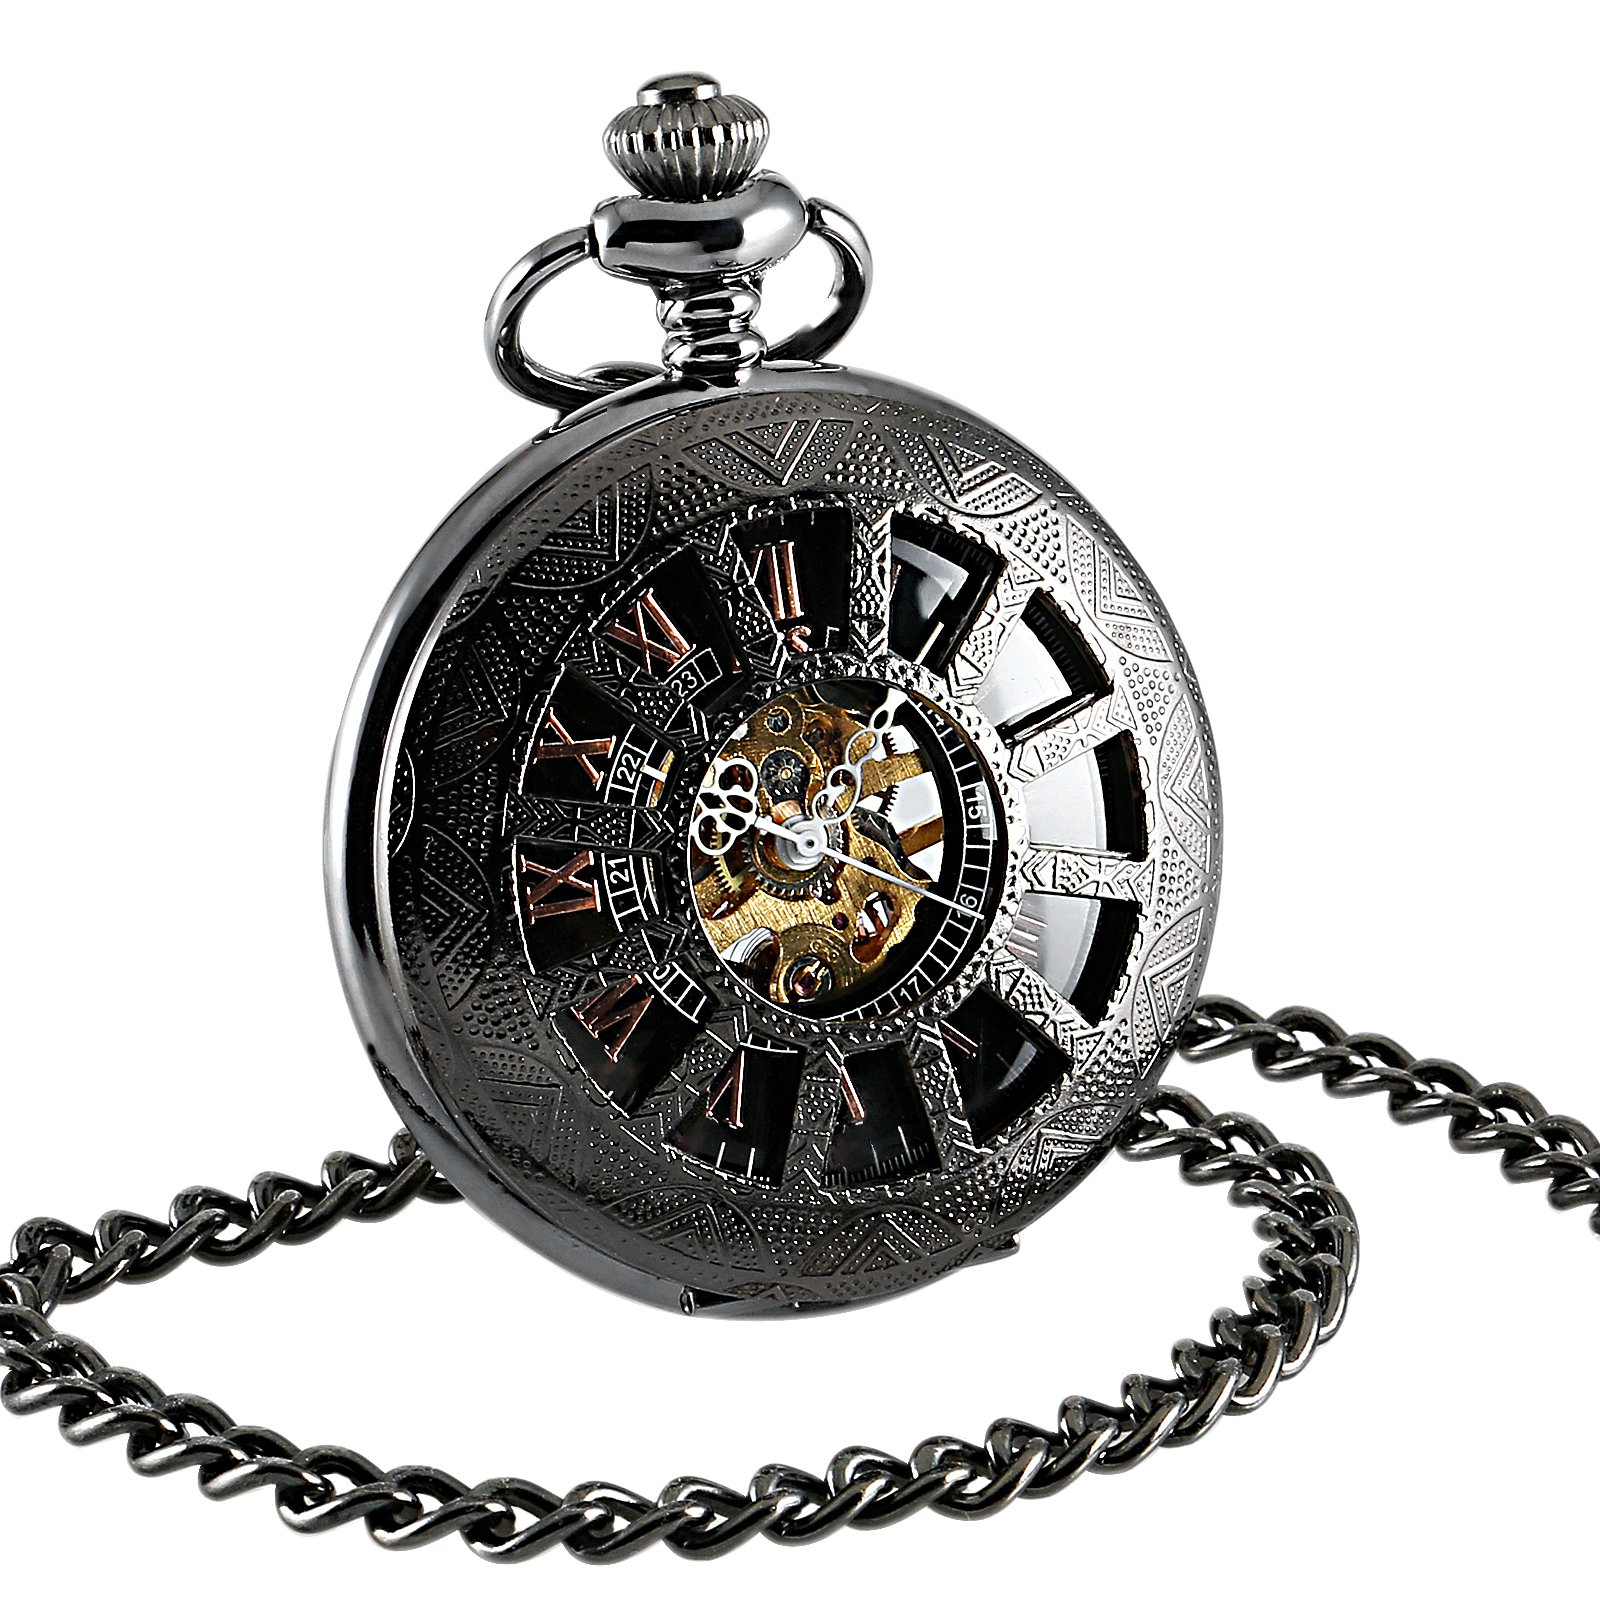 ESS Hand-Winding Mechanical Watch Pendant Gift Black Silver Mens Sport DAD